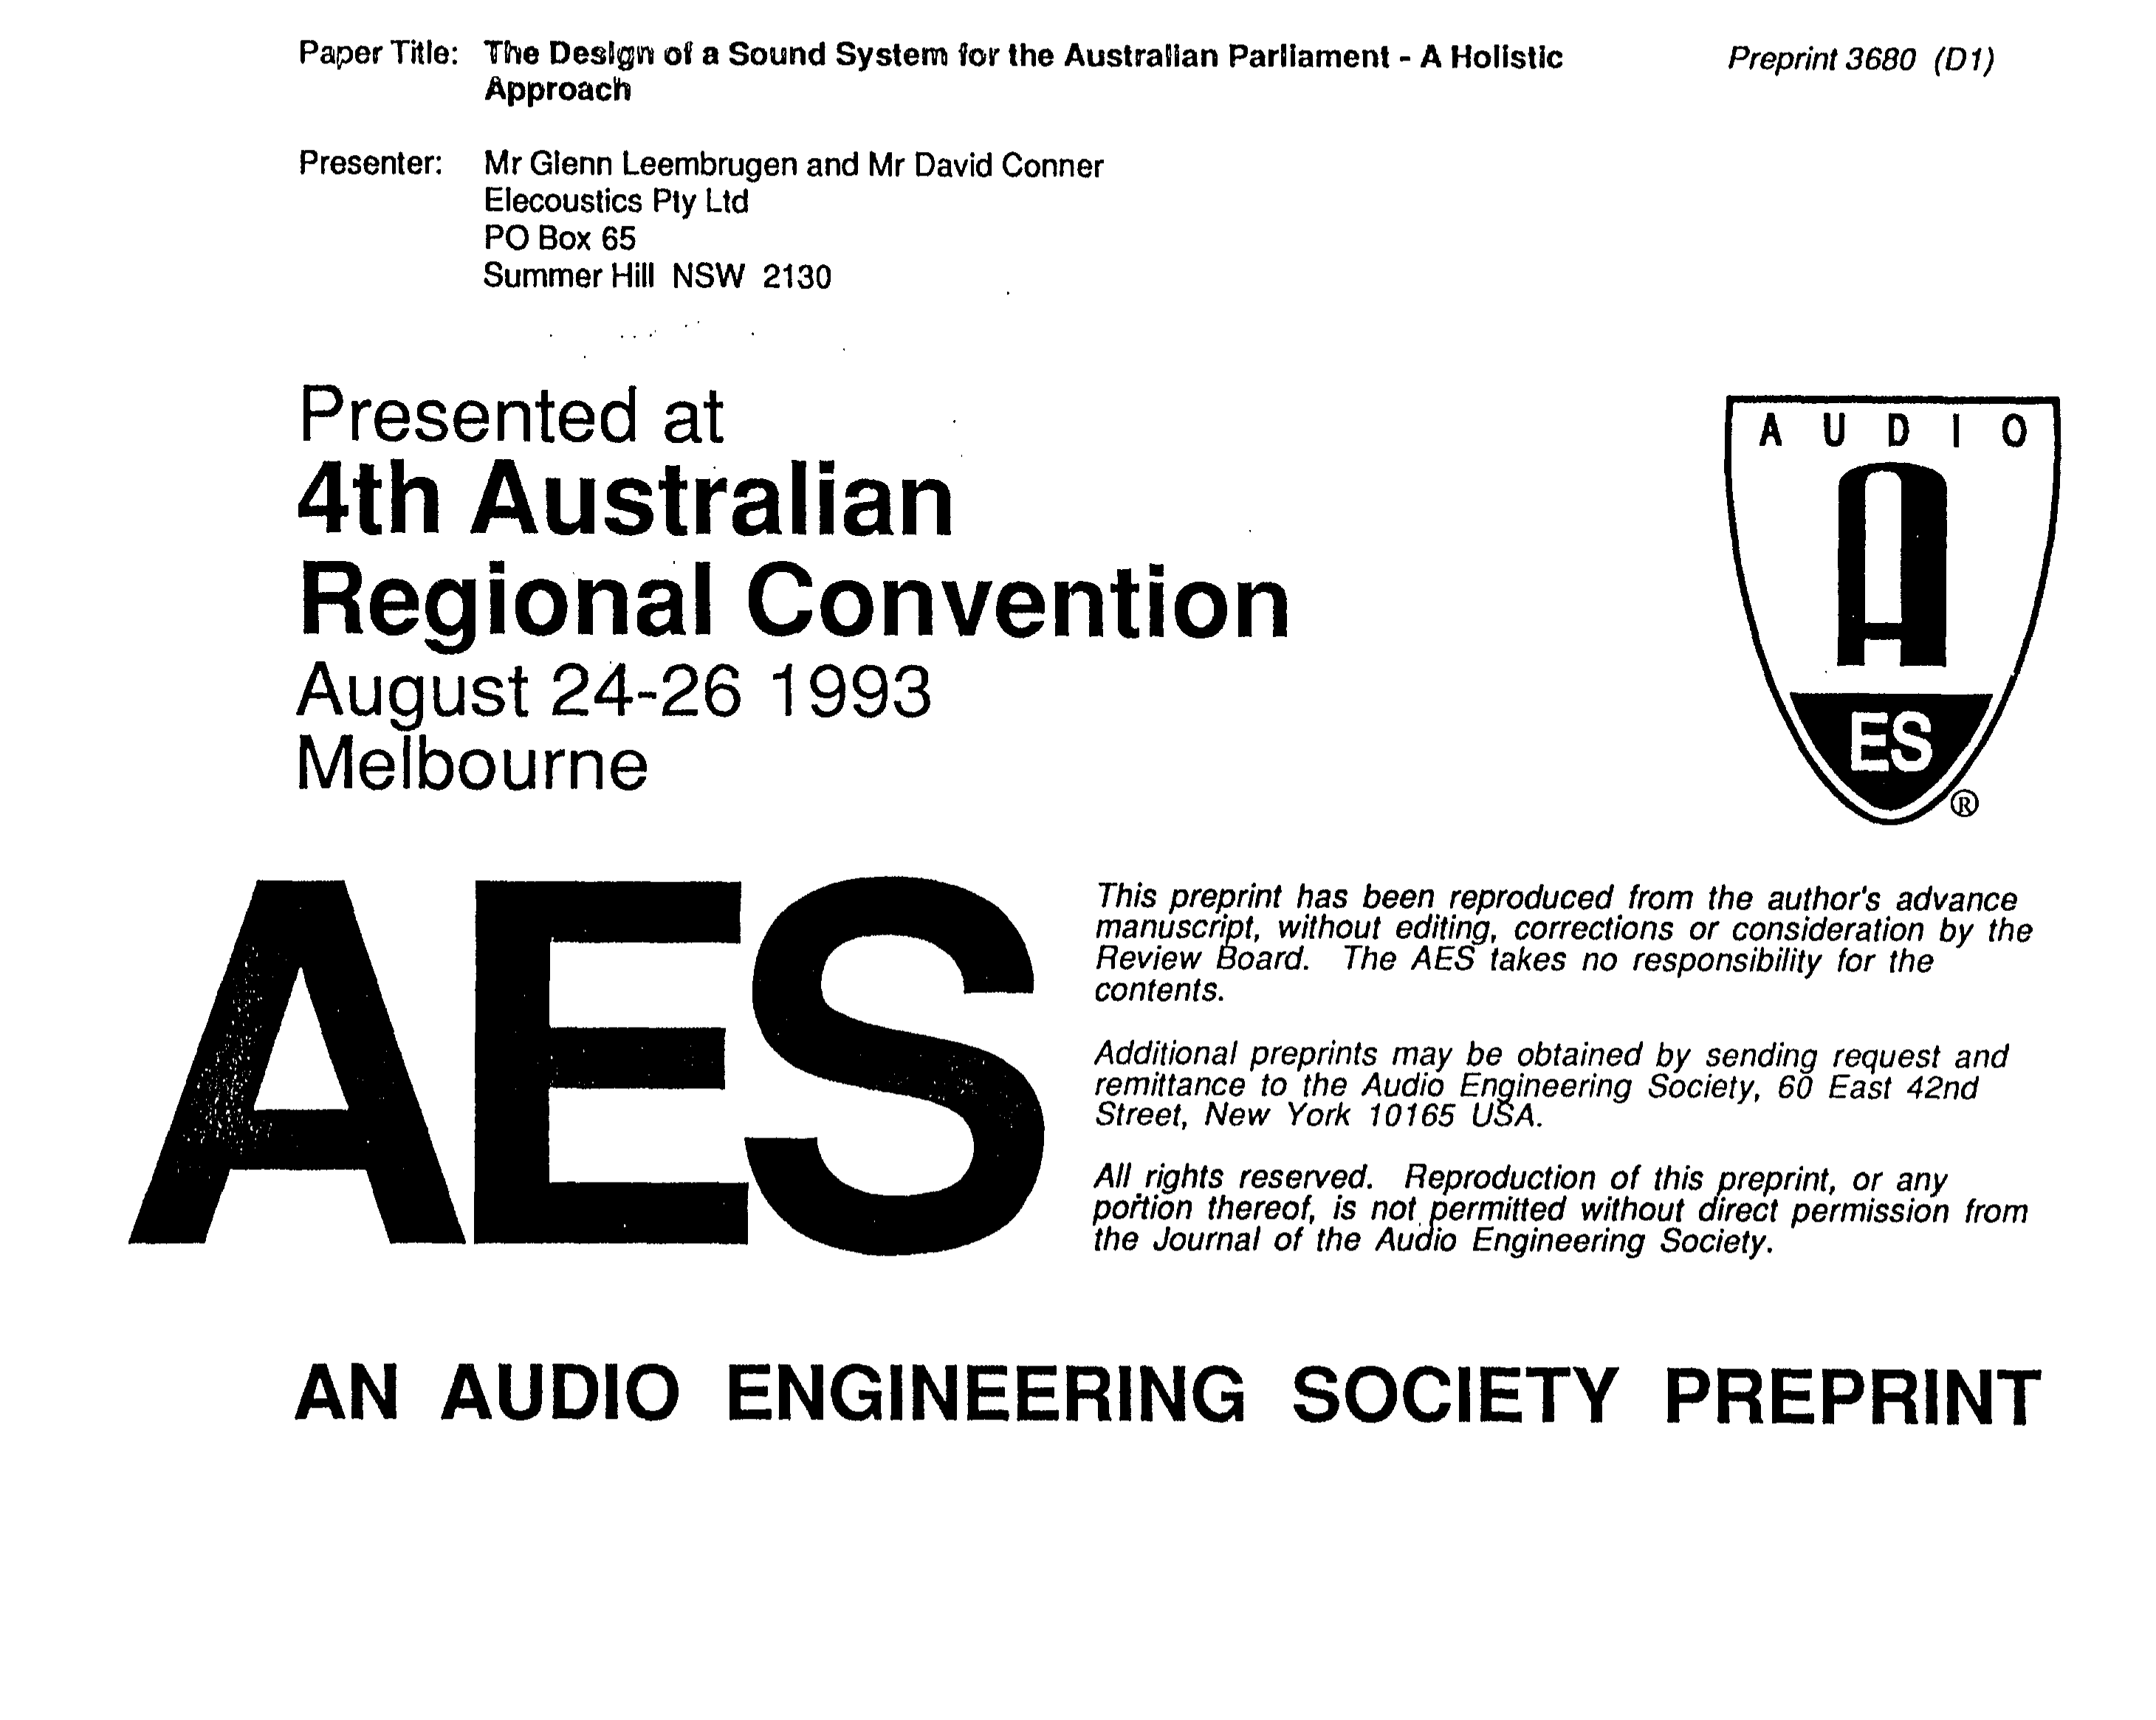 Aes E Library The Design Of A Sound System For Australian Ltz 250 Wiring Diagram Pariament Holistic Approach